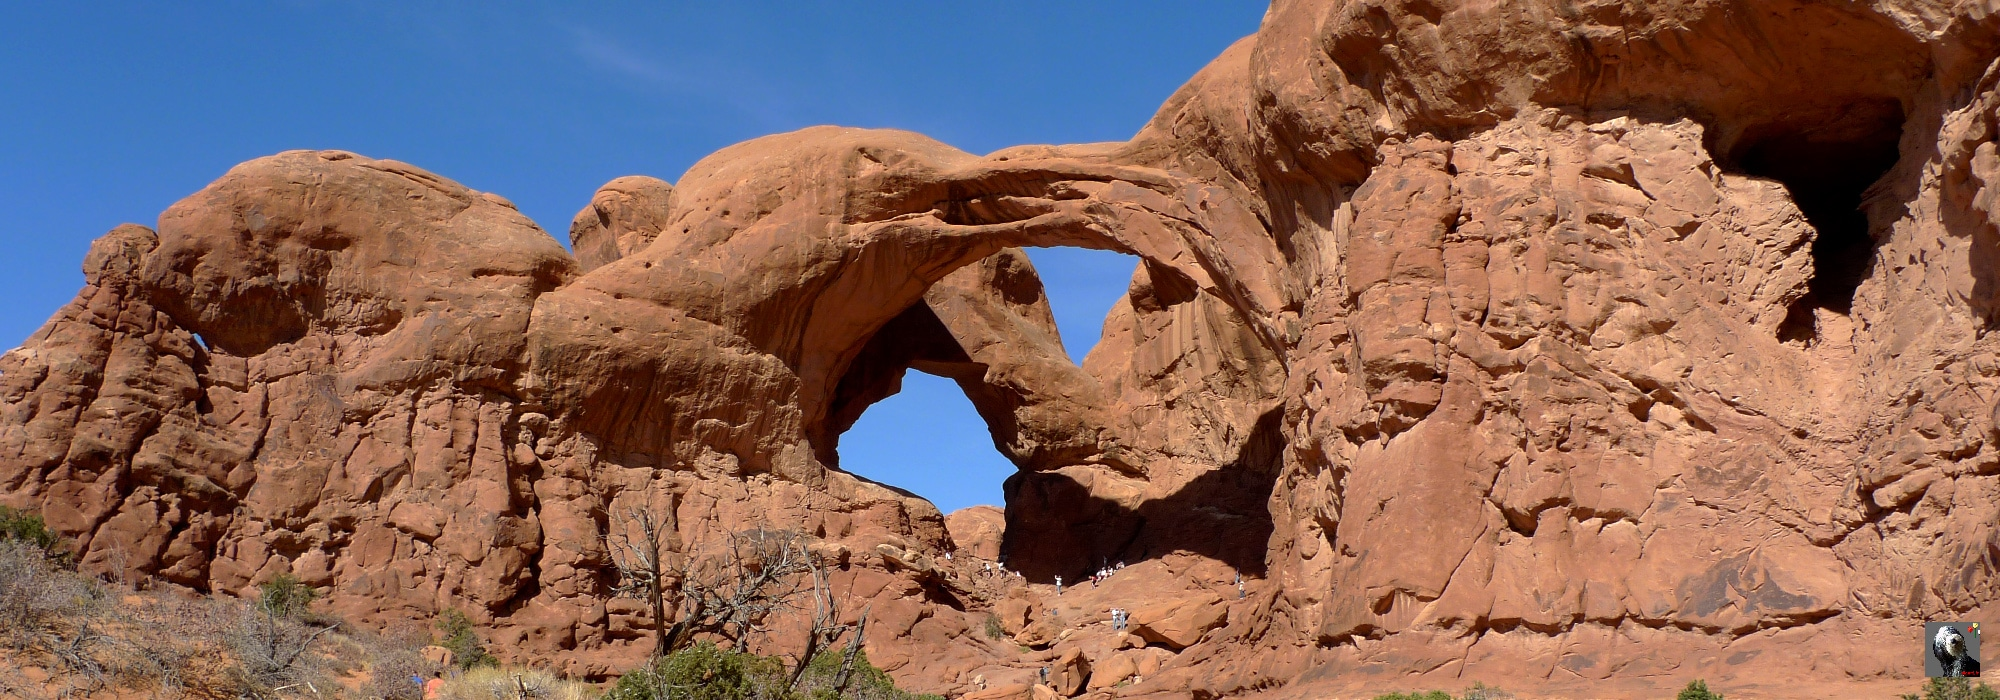 Arches National Park.